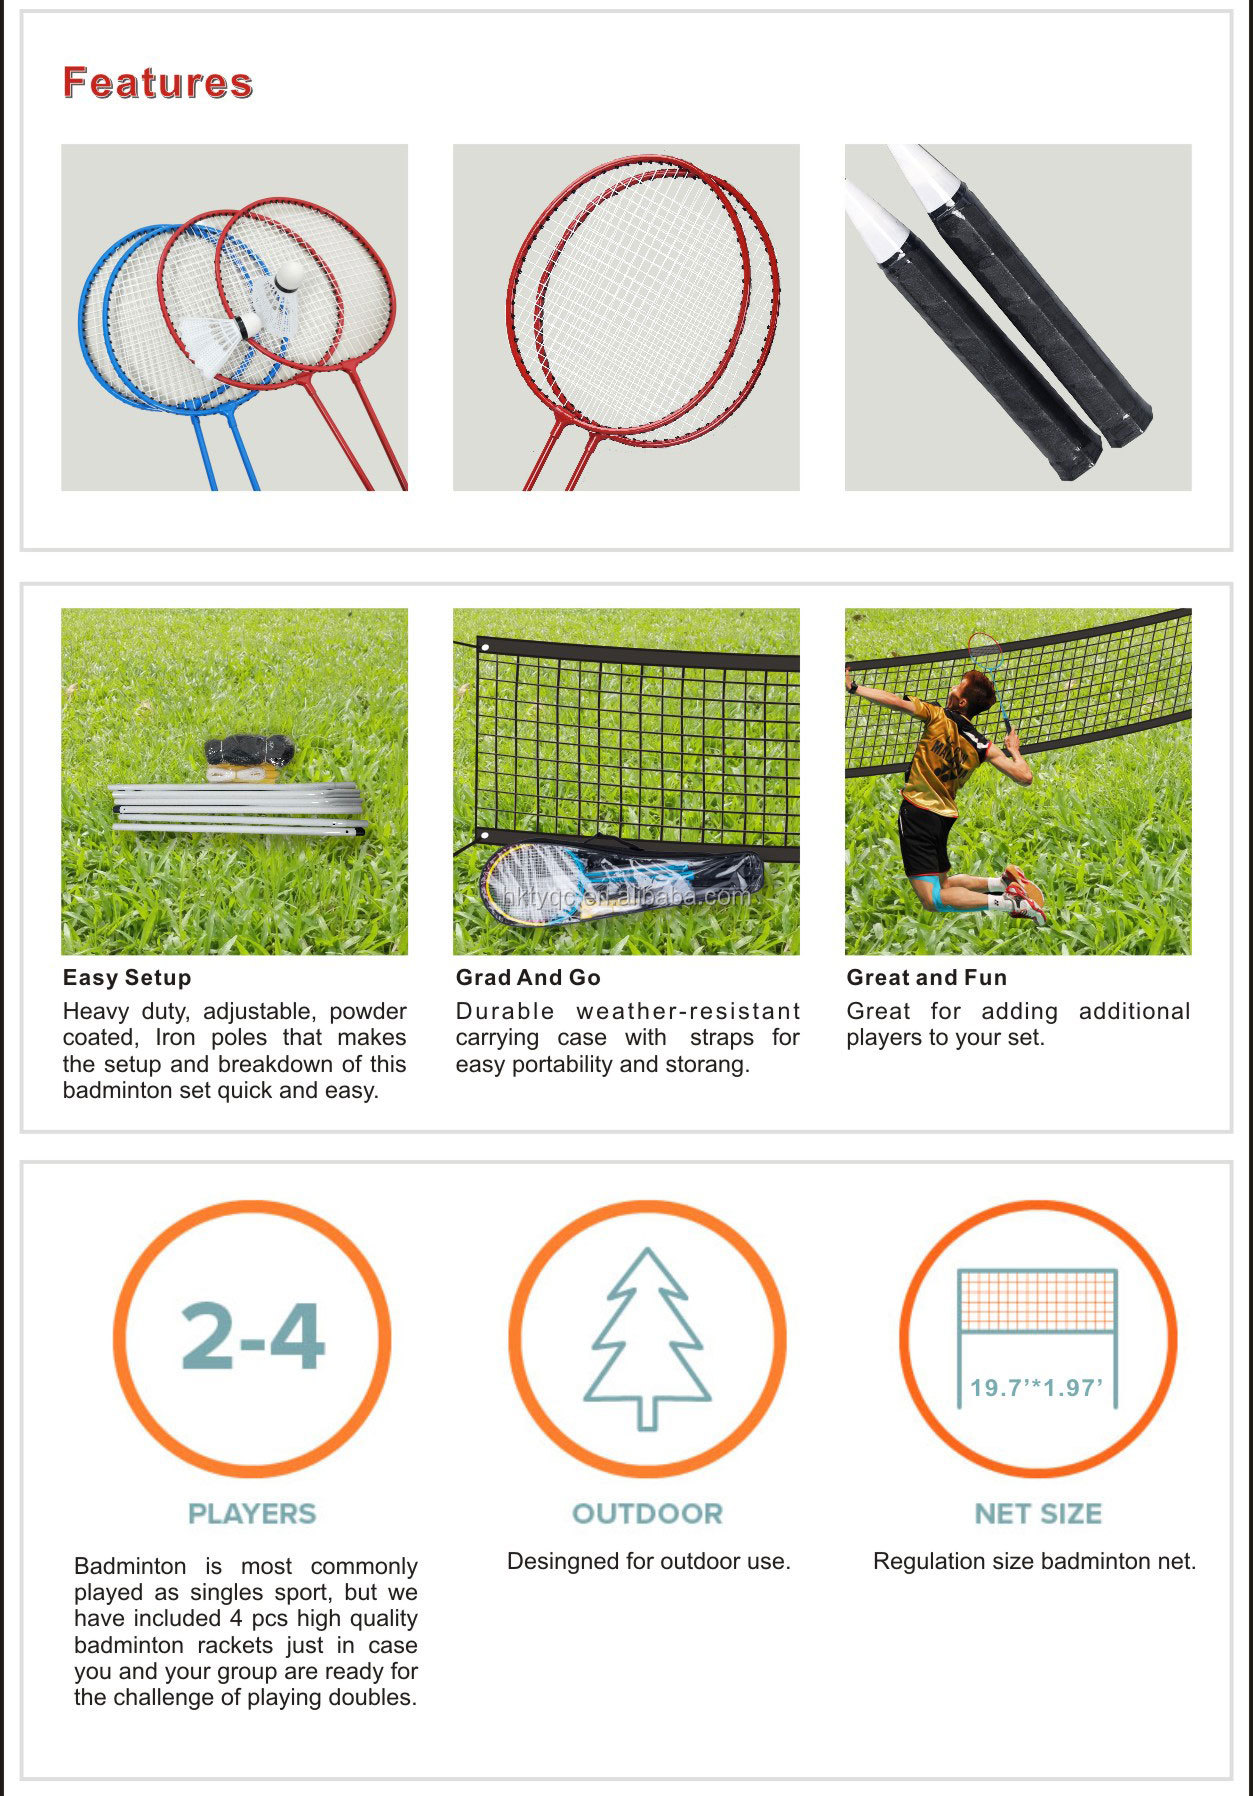 hot wholesales full graphite mesuca s fangcan badminton racket